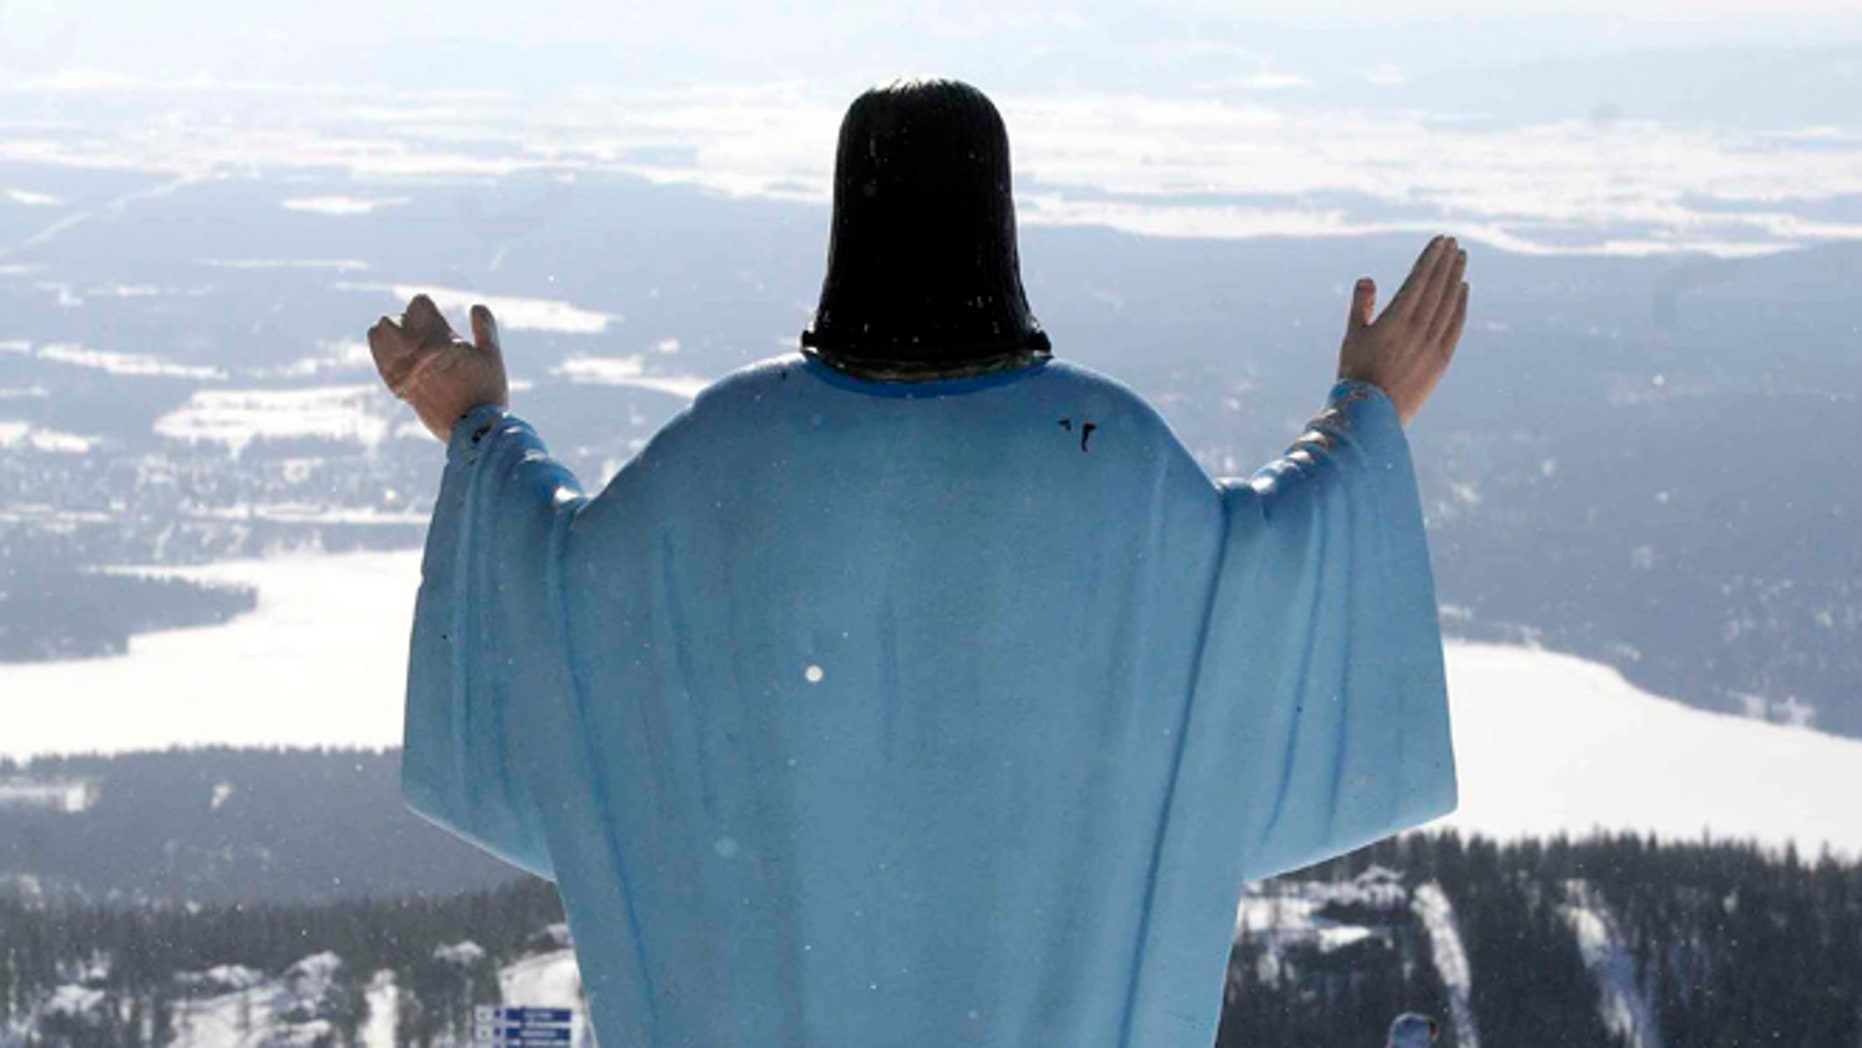 Feb. 20, 201: The statue of Jesus Christ at Whitefish Mountain Resort overlooks Whitefish Lake and the Flathead Valley in Whitefish, Mont.